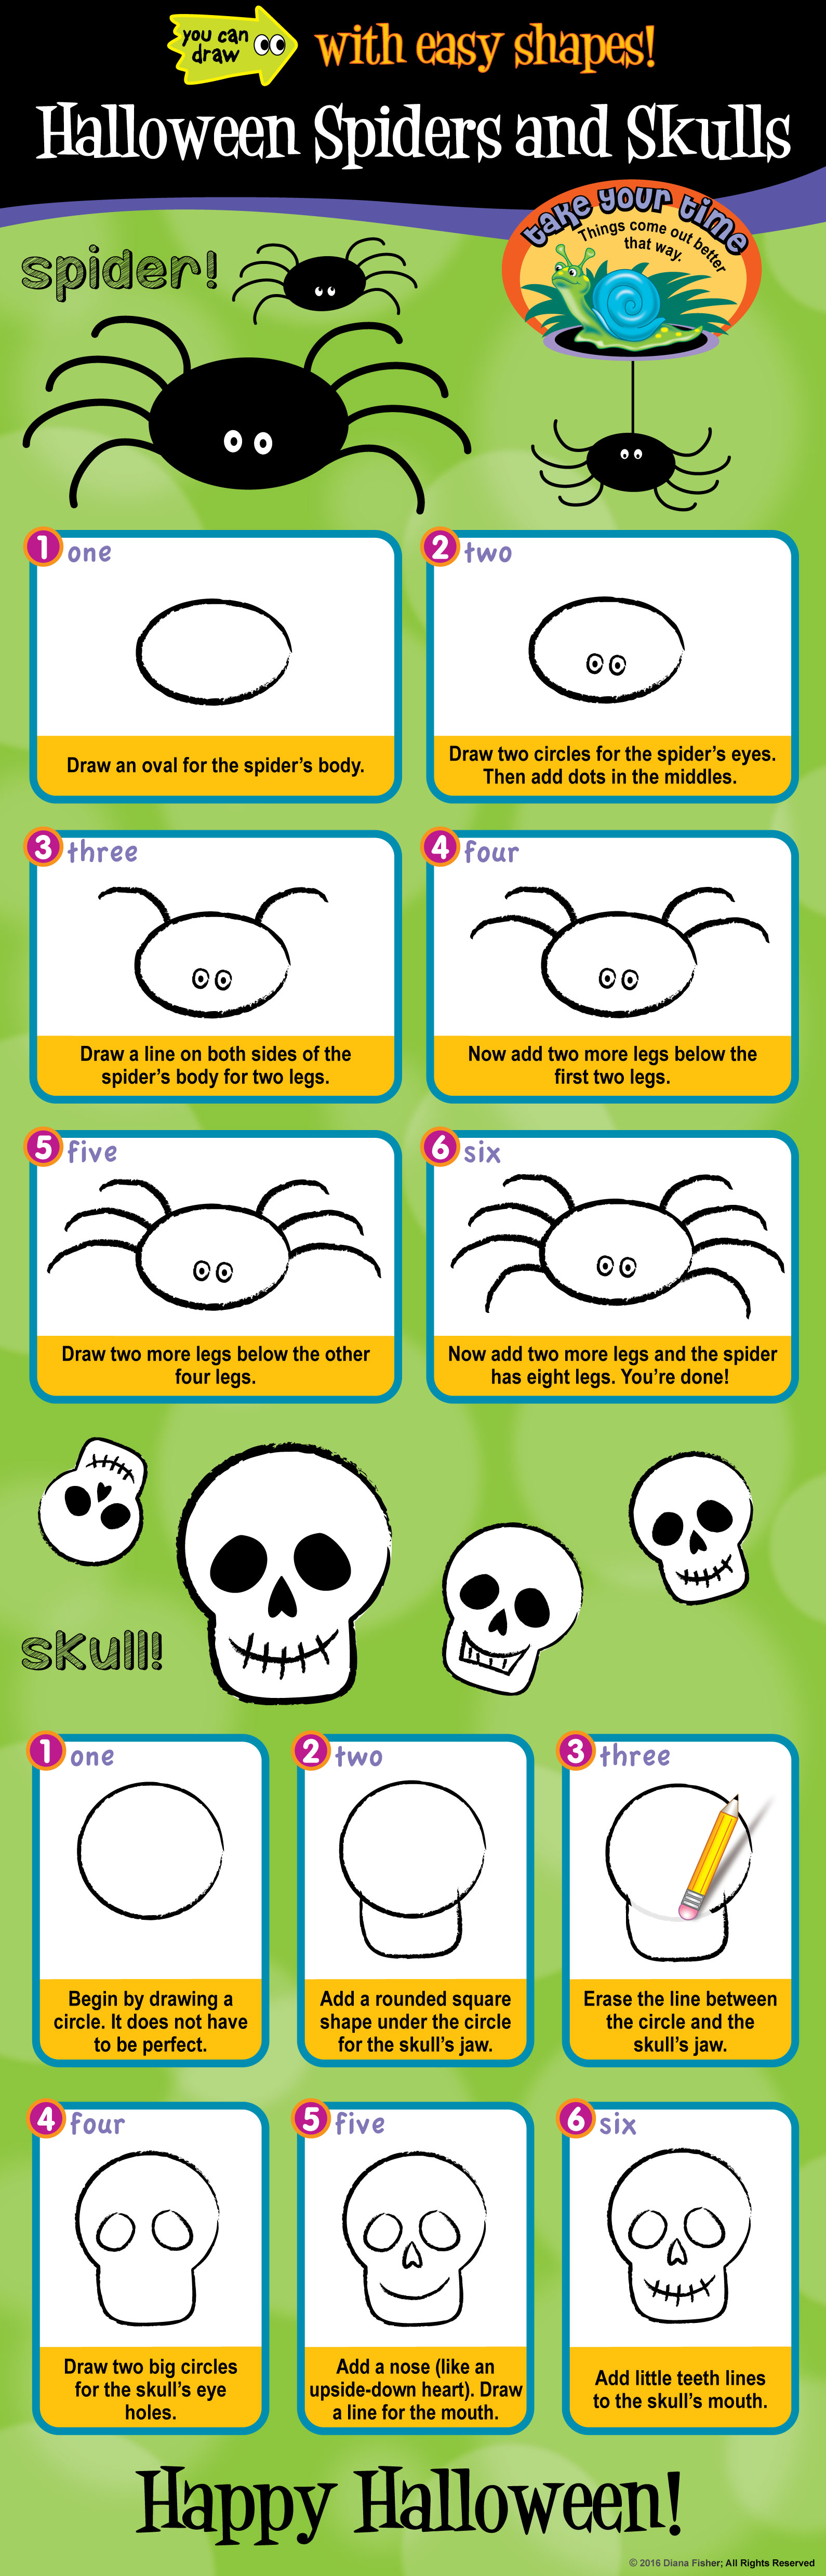 how to draw a spider and skull with easy steps for children